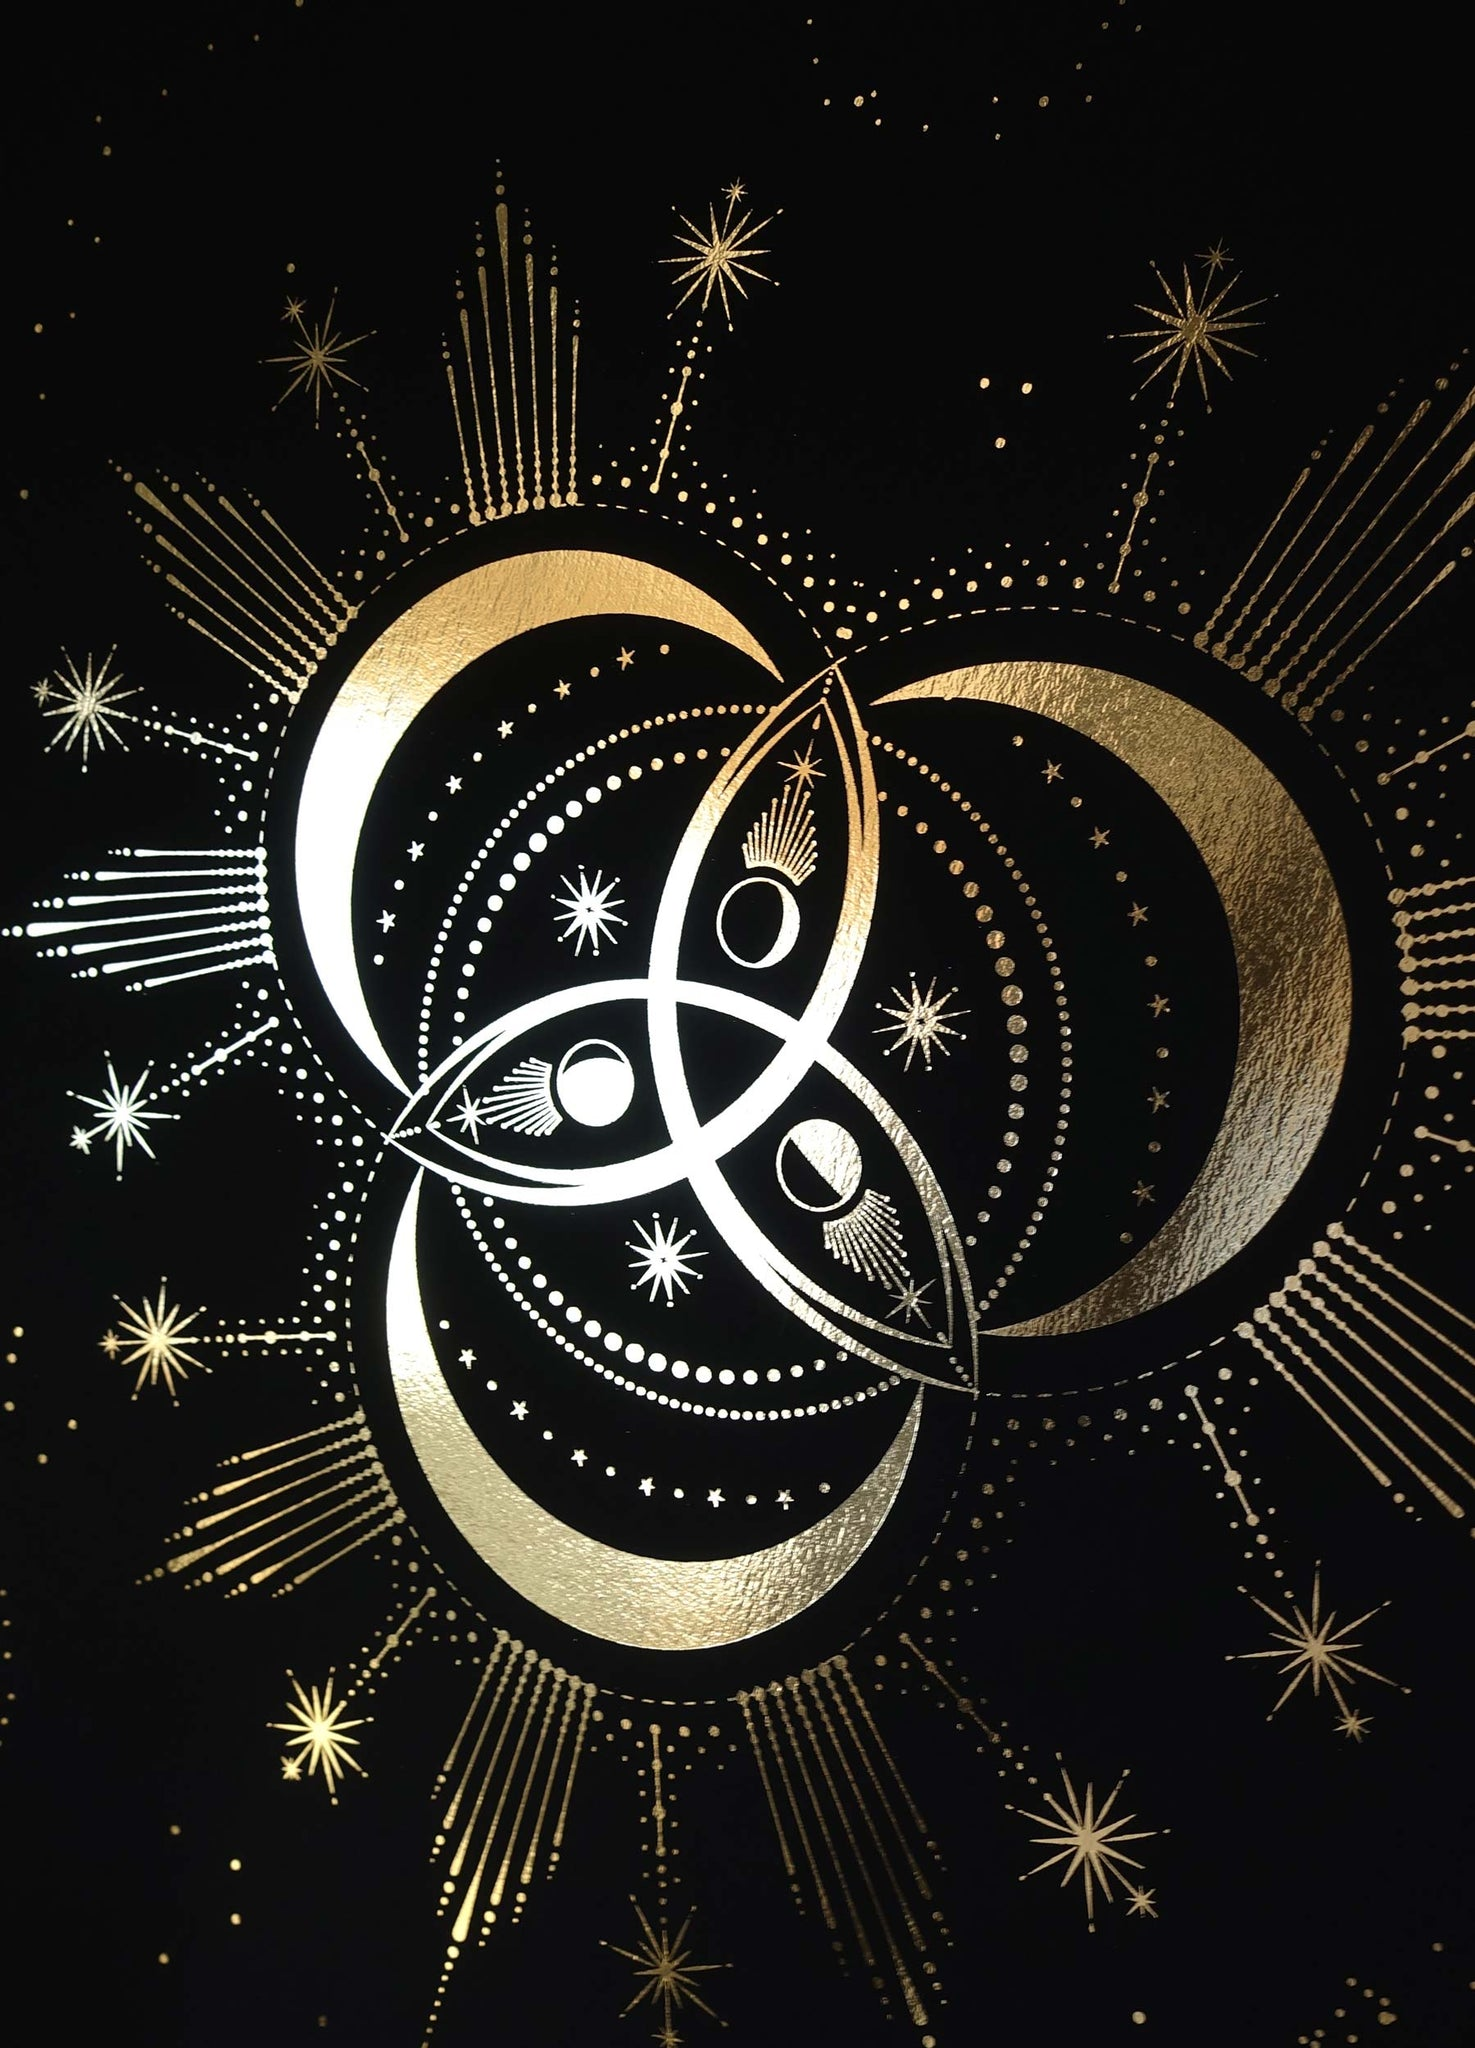 Triquetra Symbol Print in gold foil on black paper by Cocorrina & Co